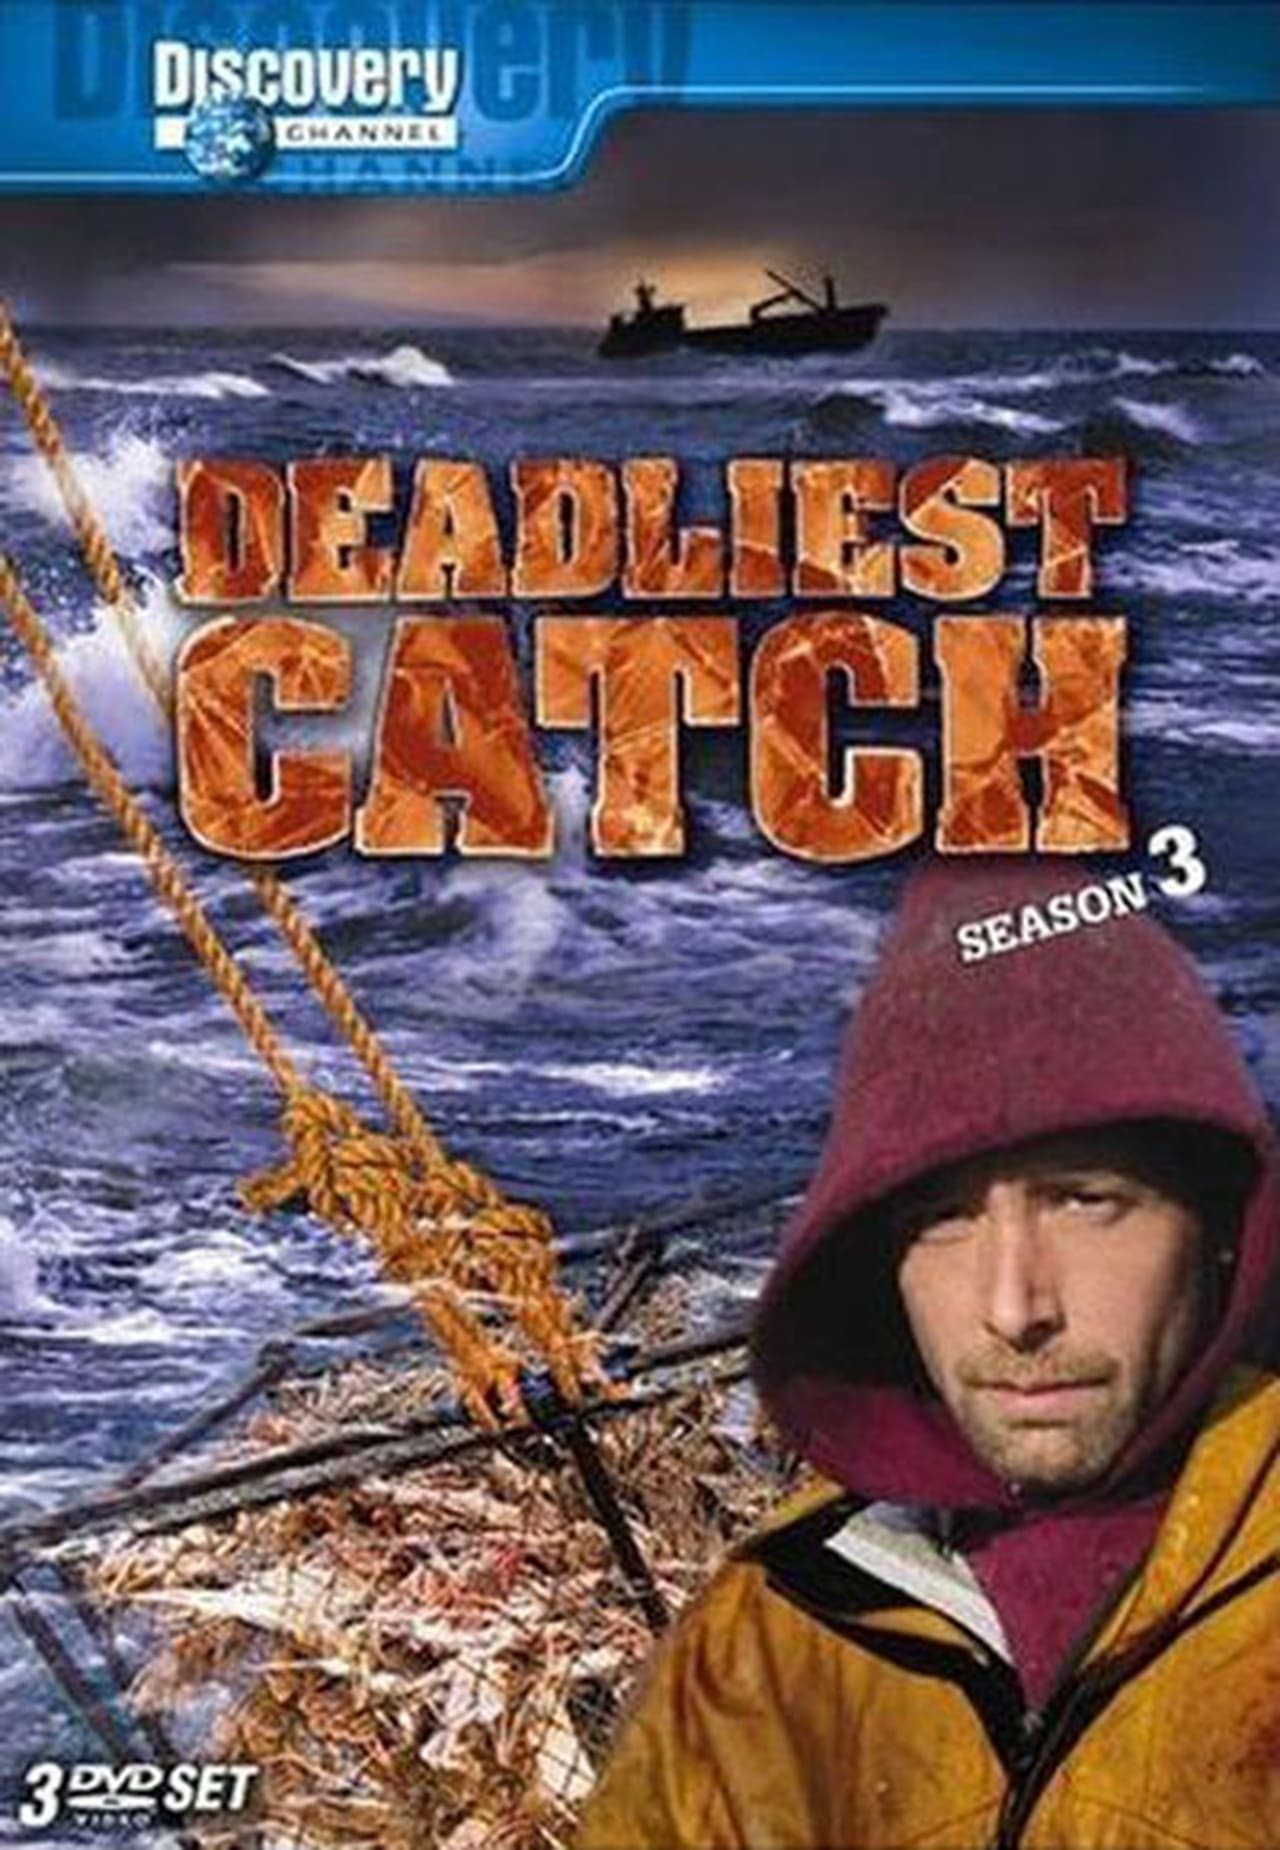 Deadliest Catch Season 3 (2007) putlockers cafe